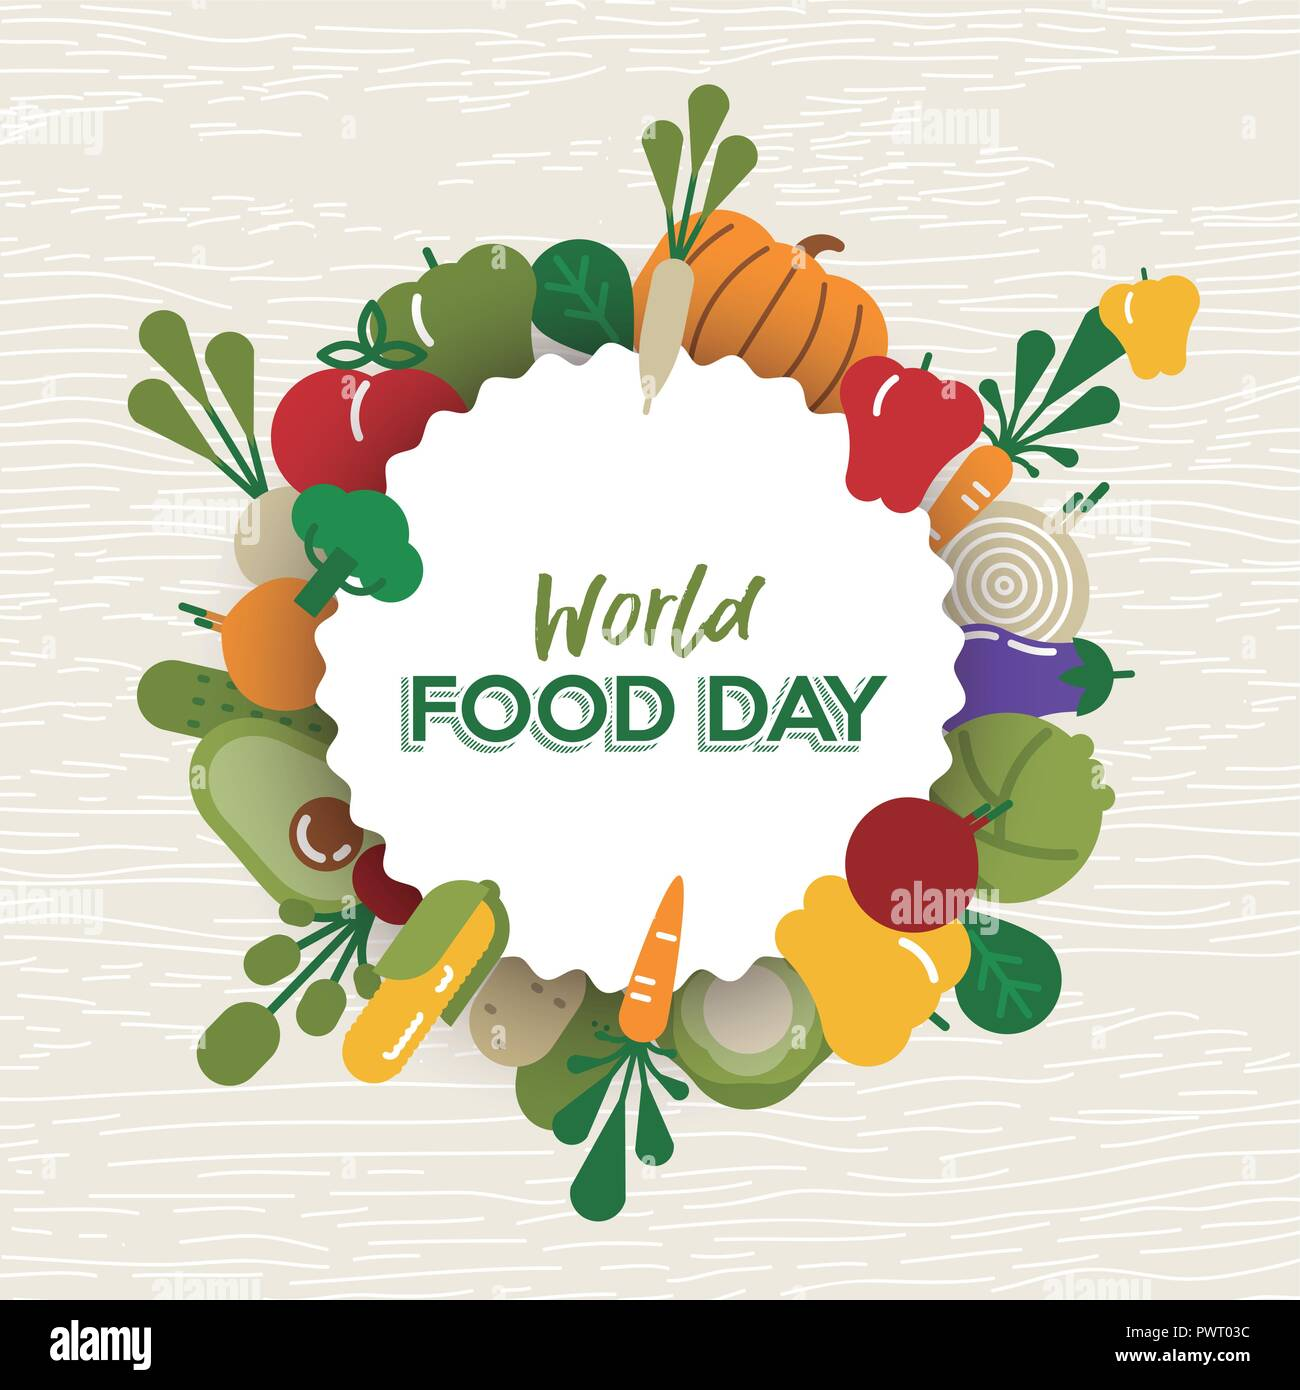 World Food Day greeting card illustration for nutrition and healthy diet with colorful flat cartoon vegetable icons. - Stock Image